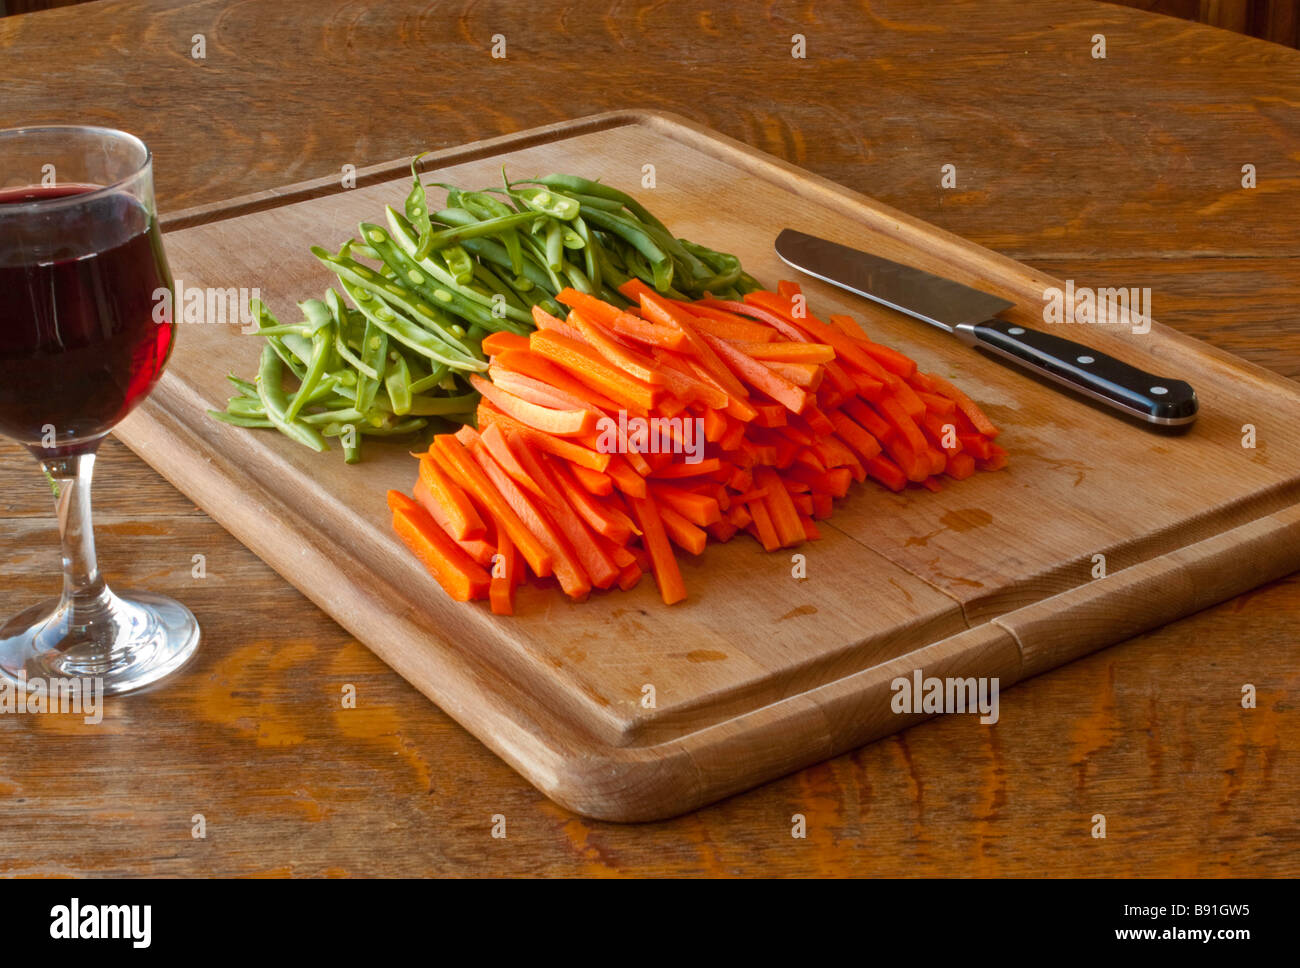 A cutting board with julienned carrots and green beans with a knife and a glass of wine for the chef - Stock Image